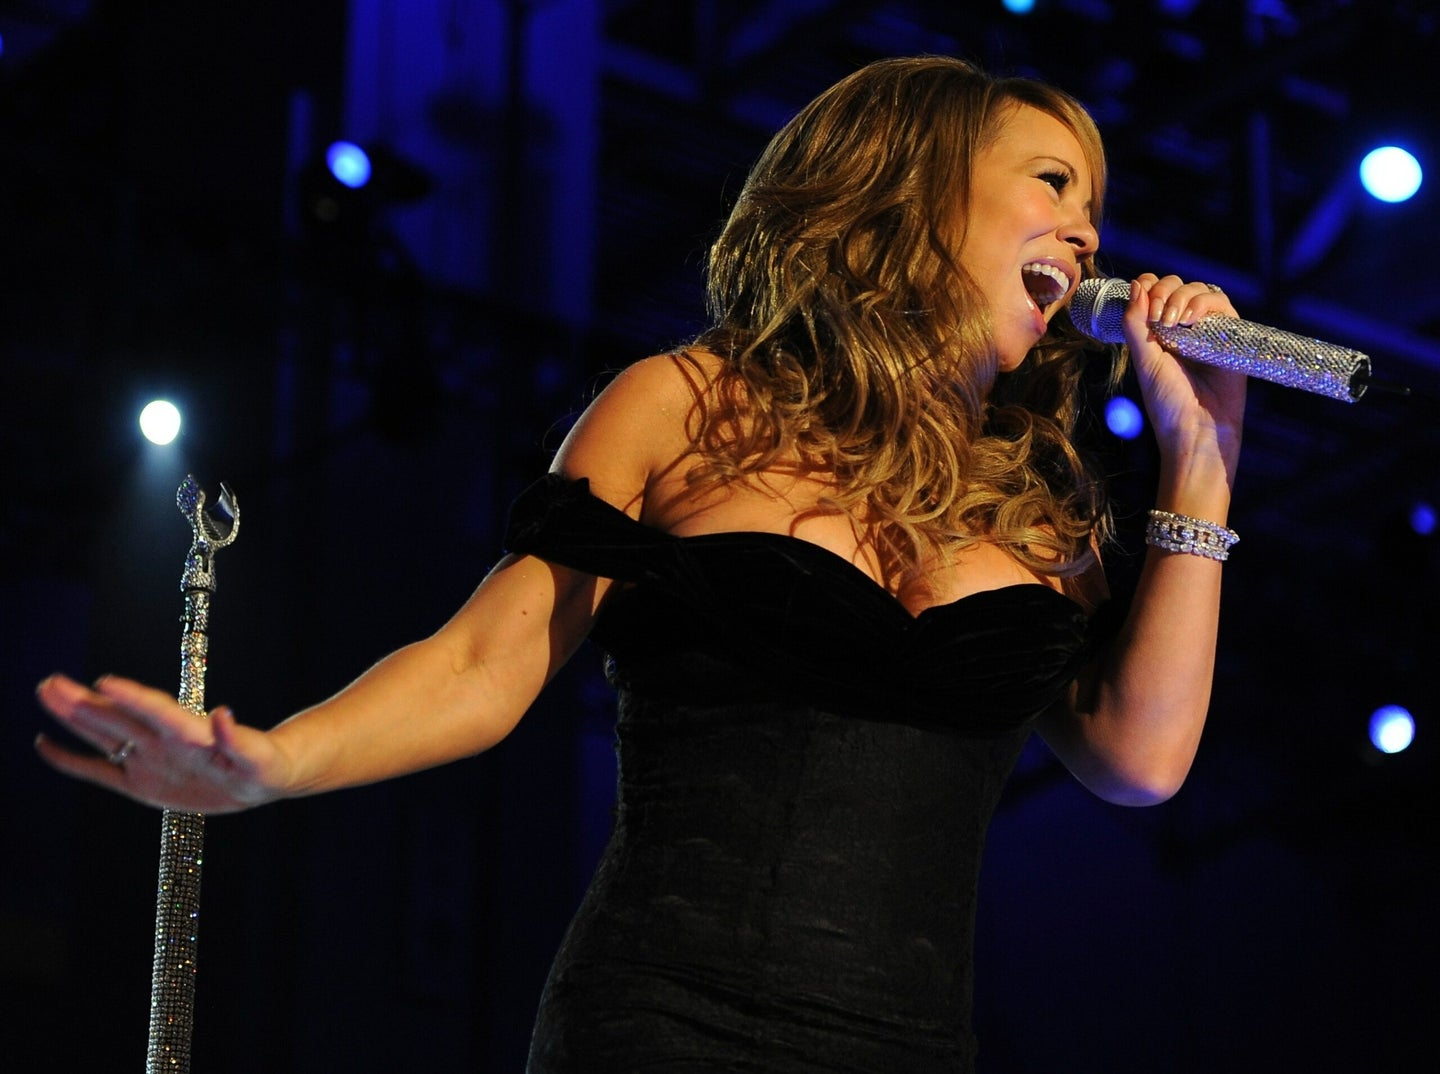 Sorry, even Mariah Carey can't twist bottle caps off with her voice